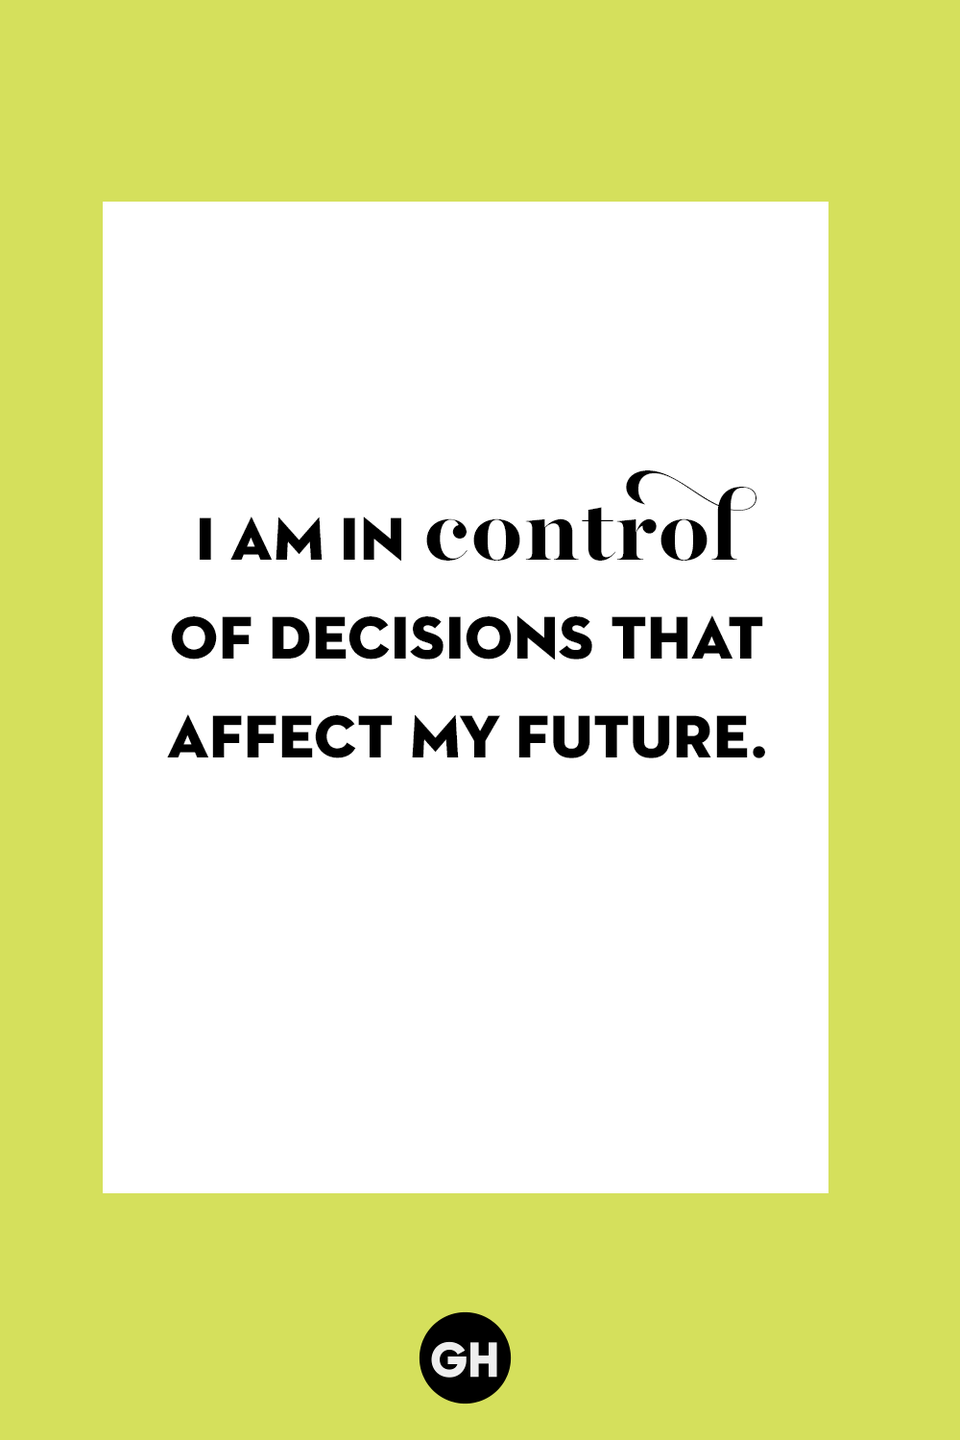 <p>I am in control of decisions that affect my future. </p>